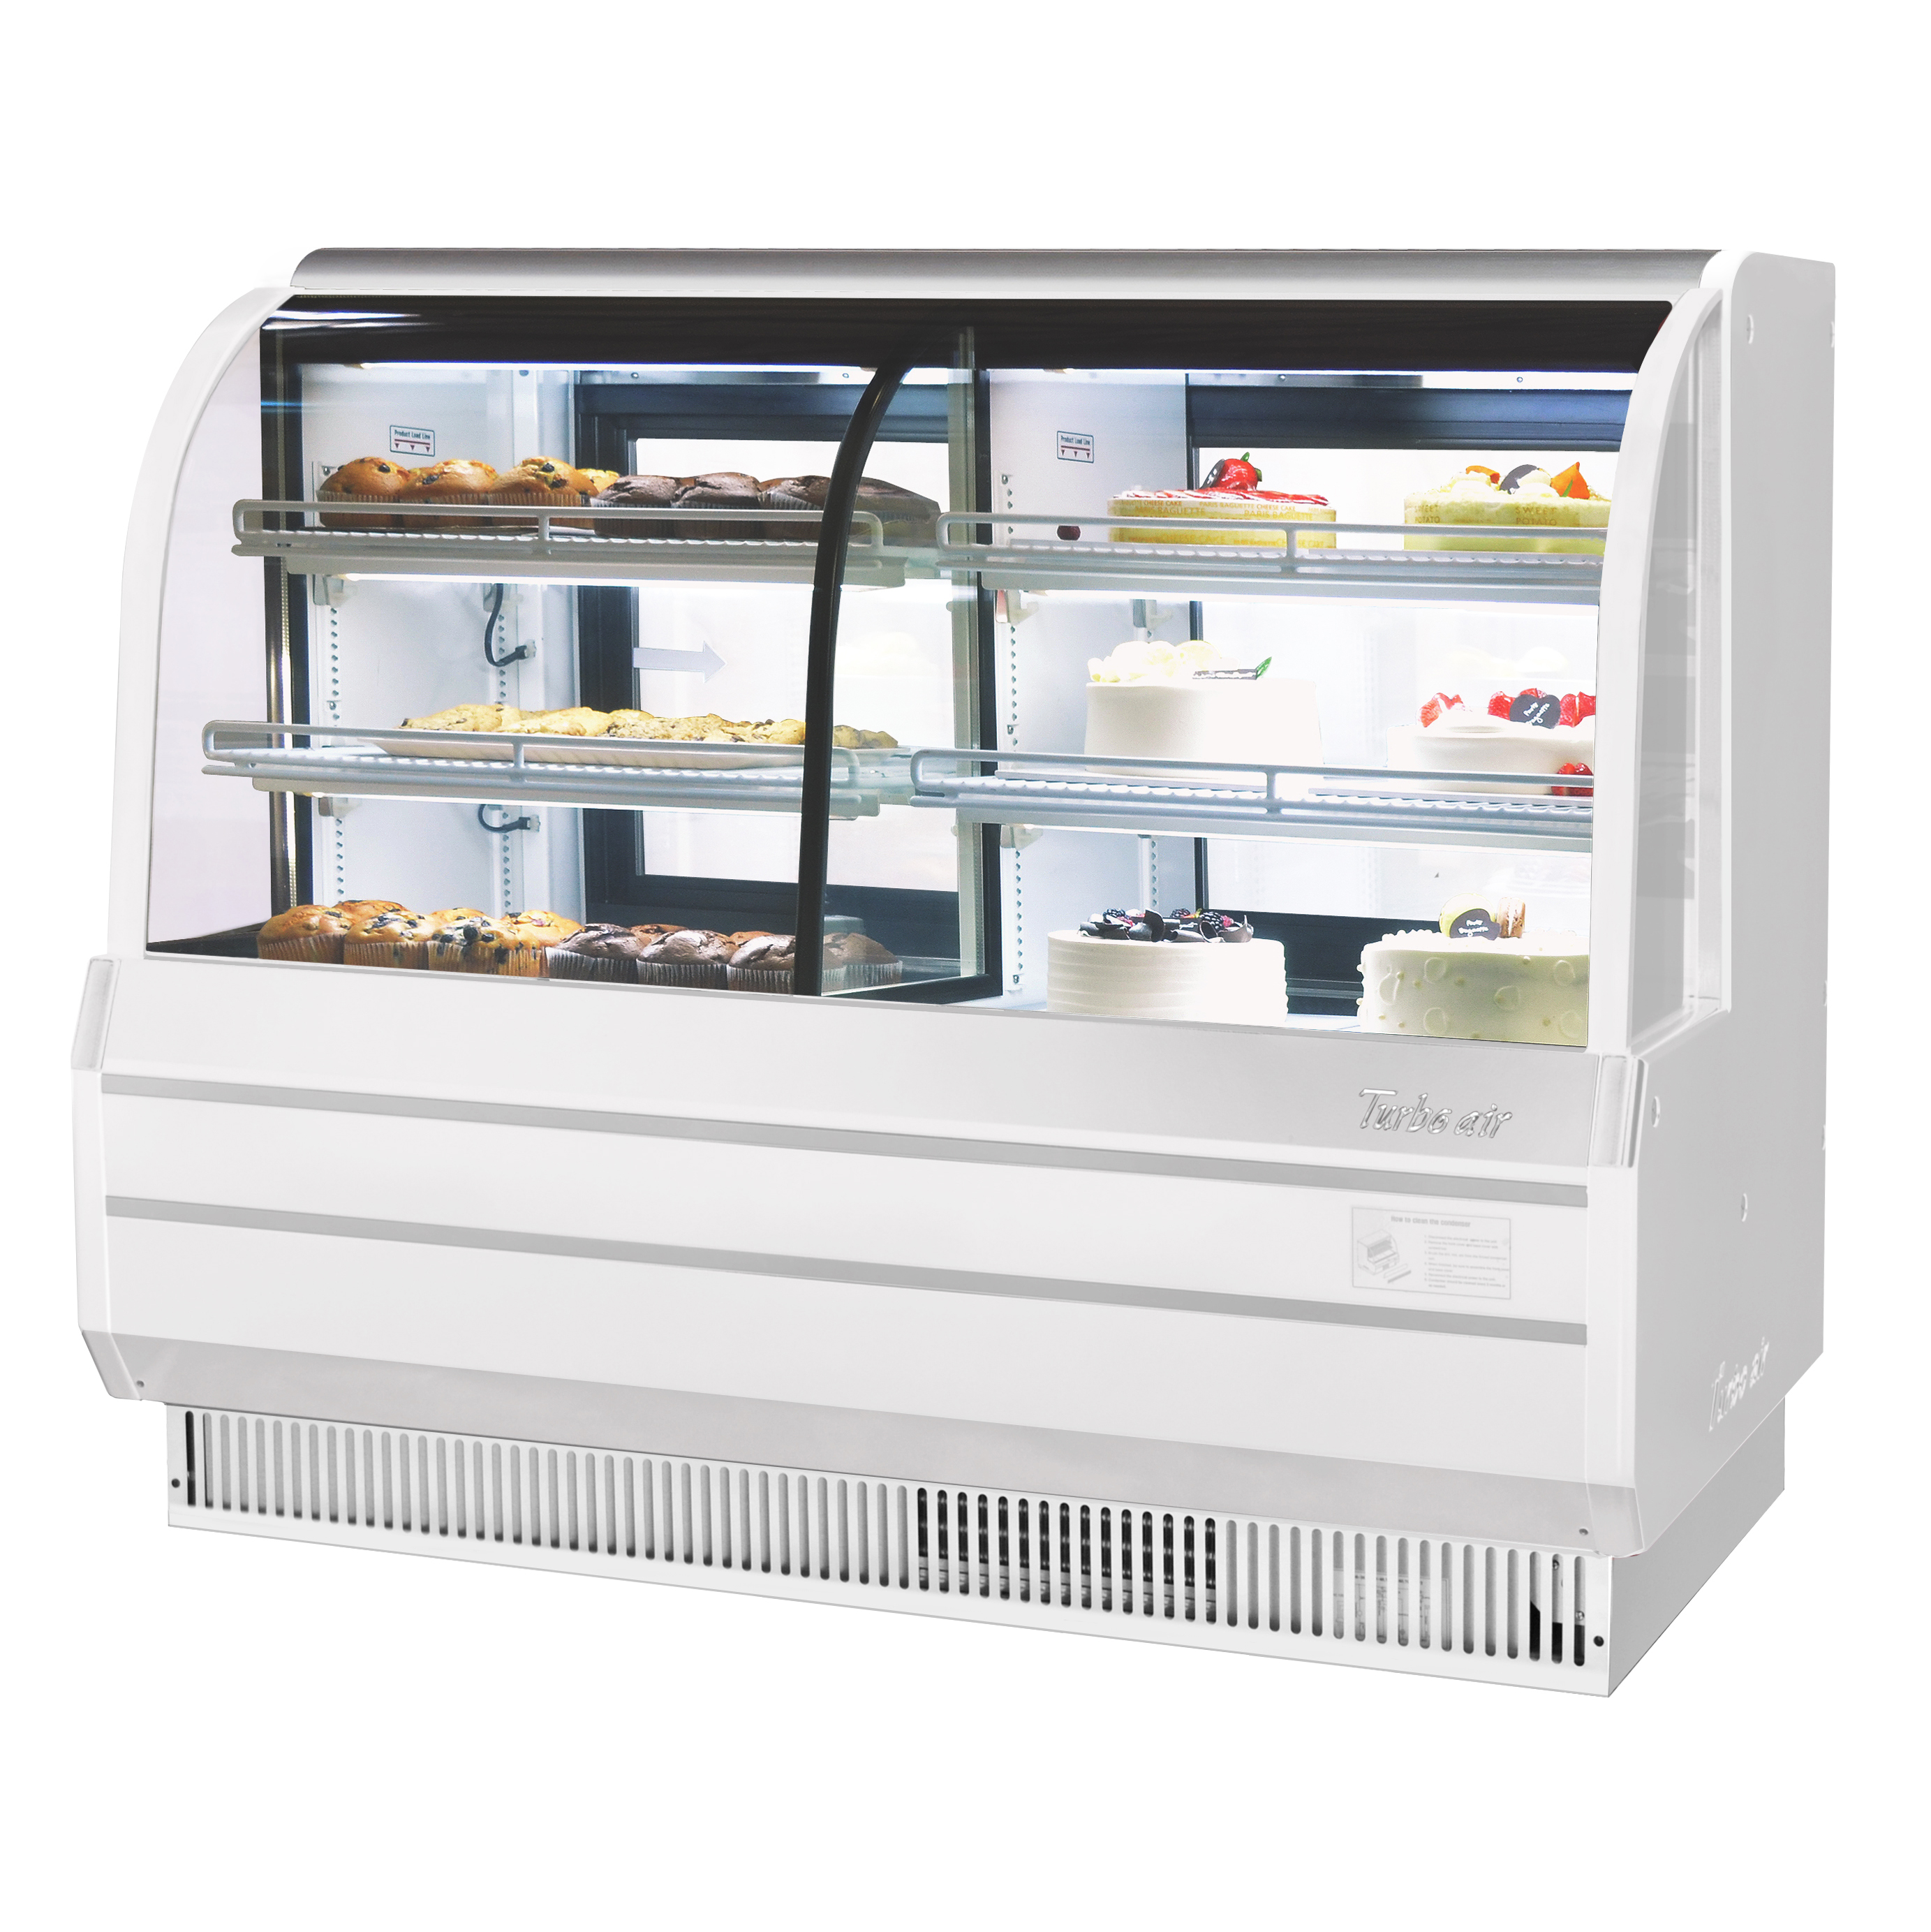 Turbo Air TCGB-60DR-W(B) display case, non-refrigerated bakery